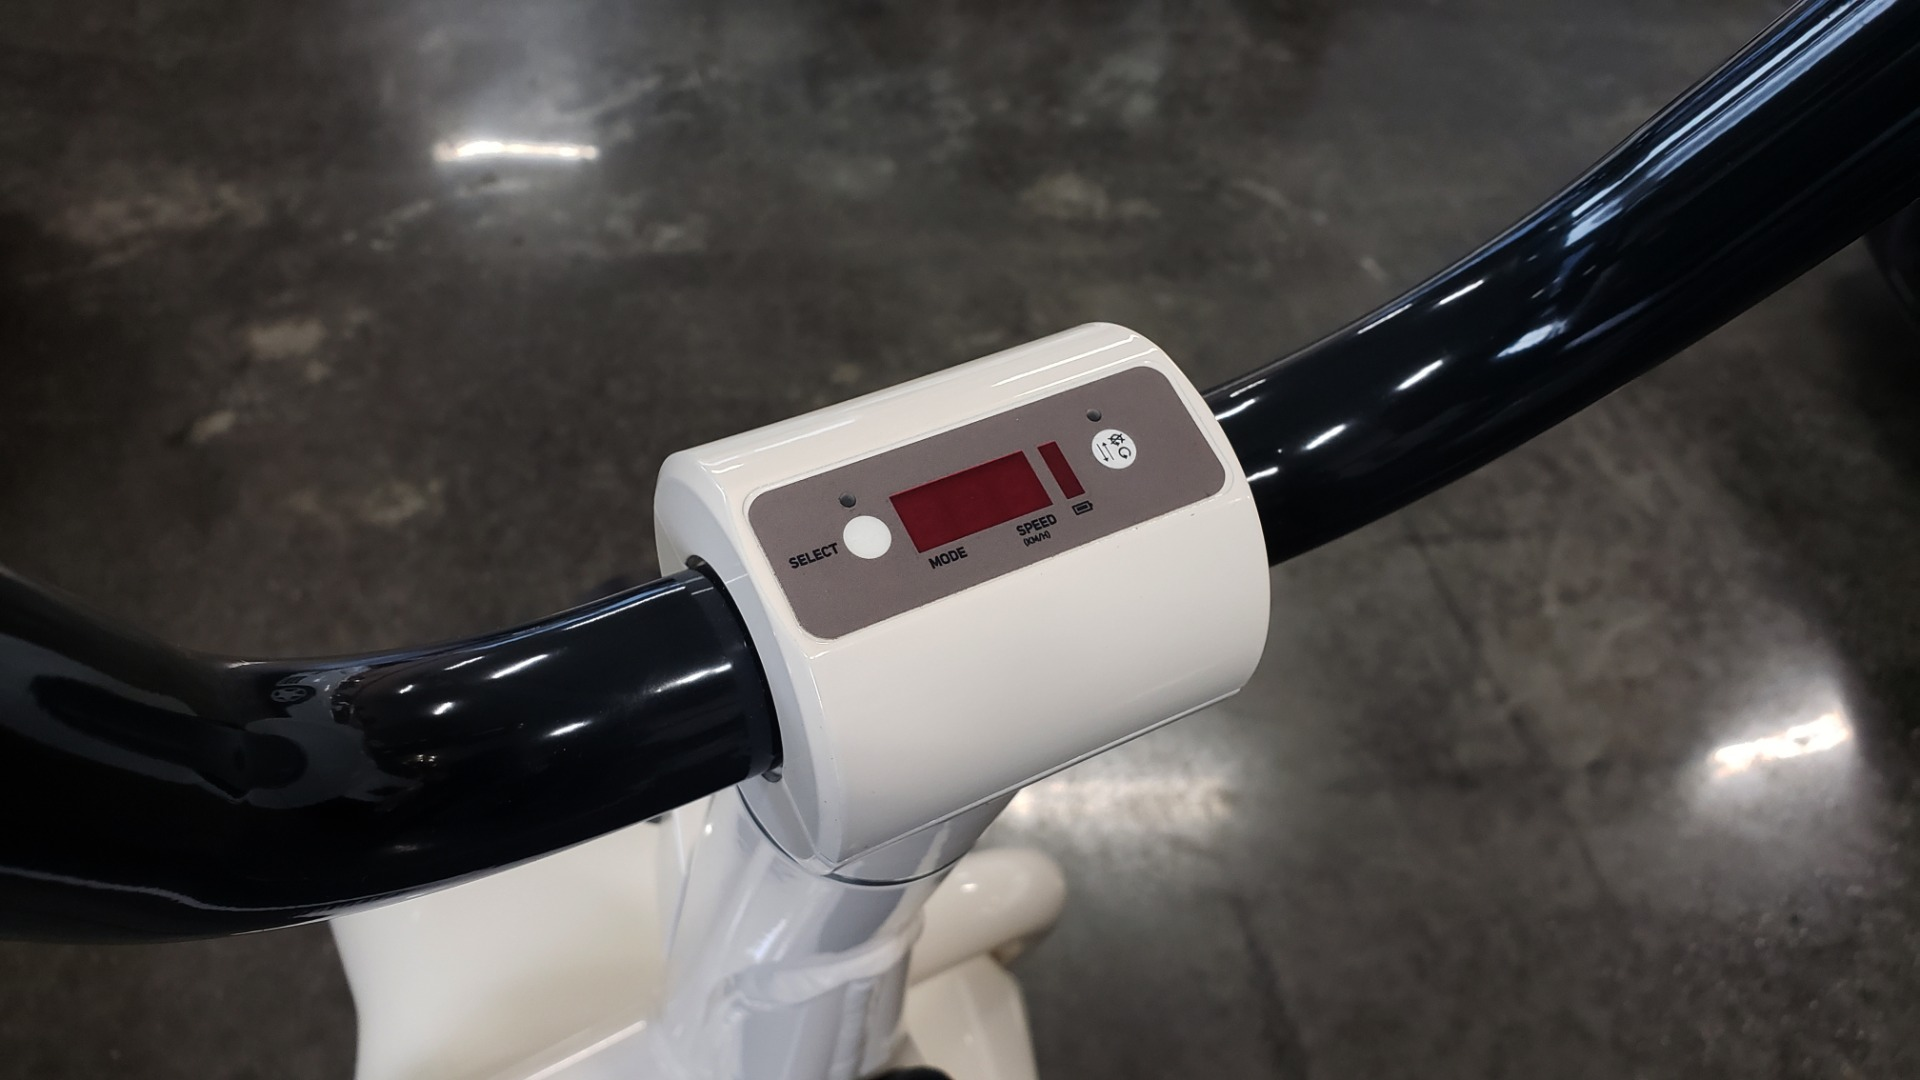 Used 2018 SCROOSER ELECTRIC SCOOTER SELF BALANCED / FOAM WHITE / 15.5 MPH / 34 MI RANGE for sale $1,699 at Formula Imports in Charlotte NC 28227 8